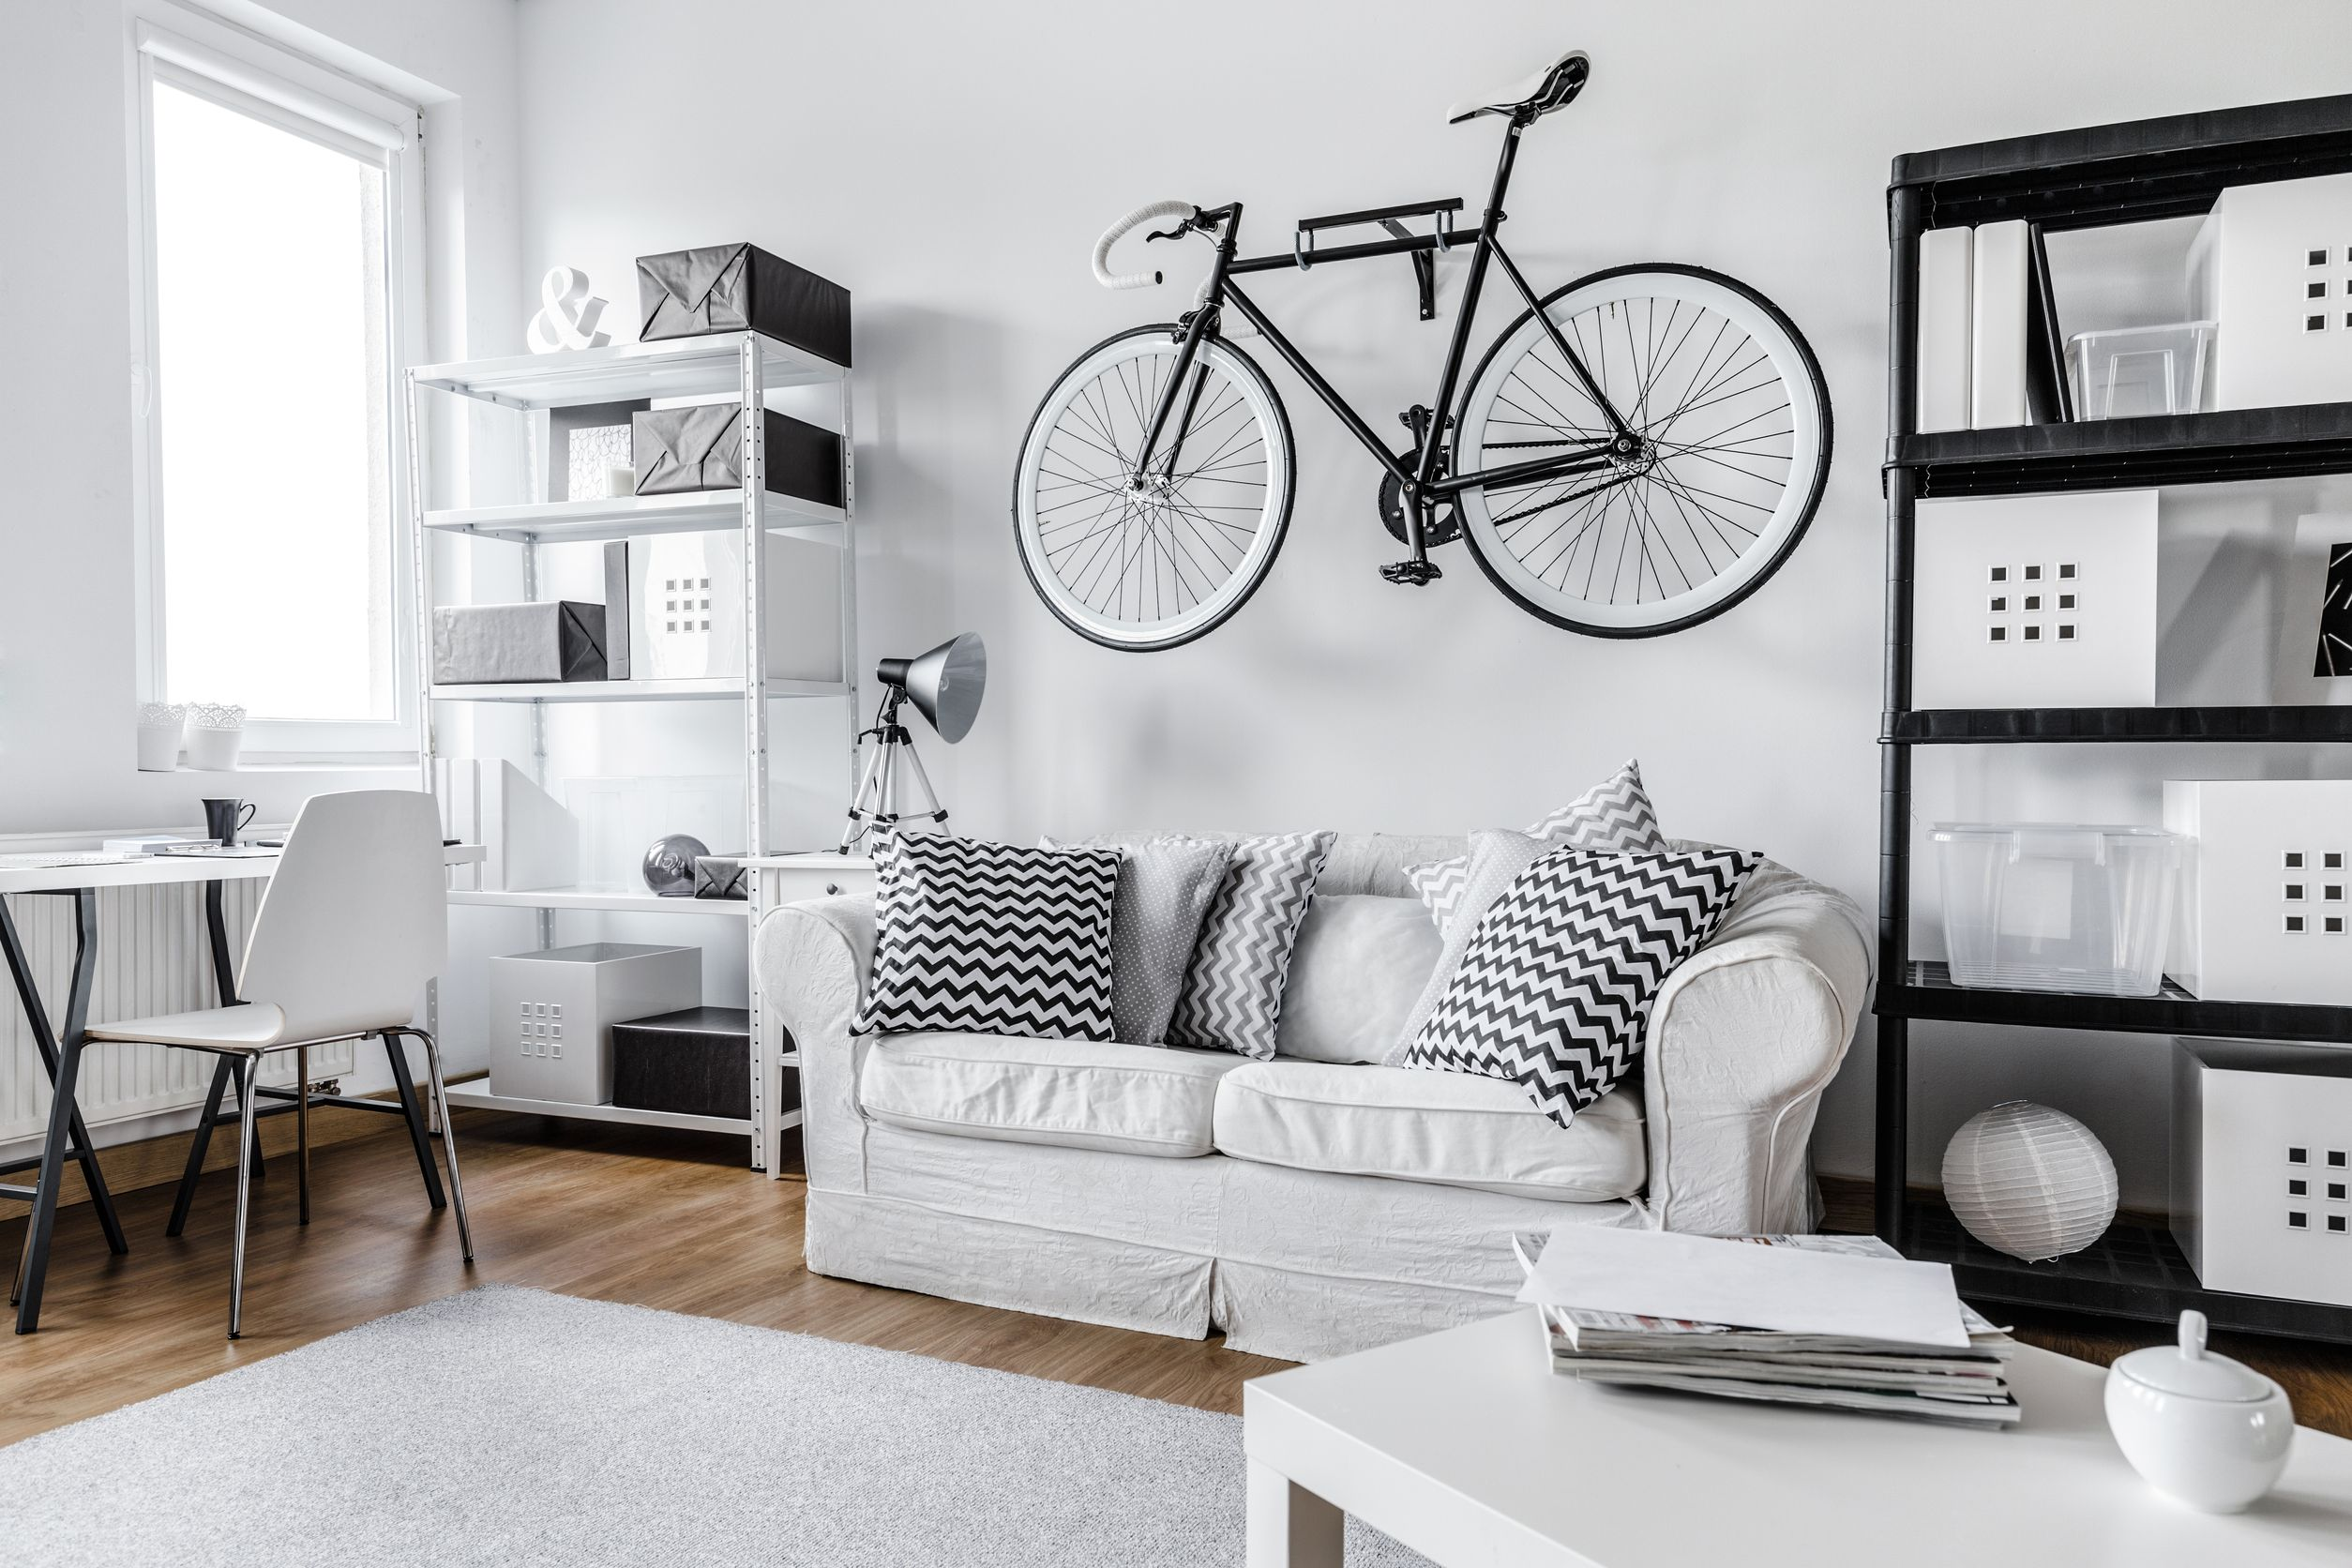 Small Space, Big Style: 7 Ways To Maximize Space In A